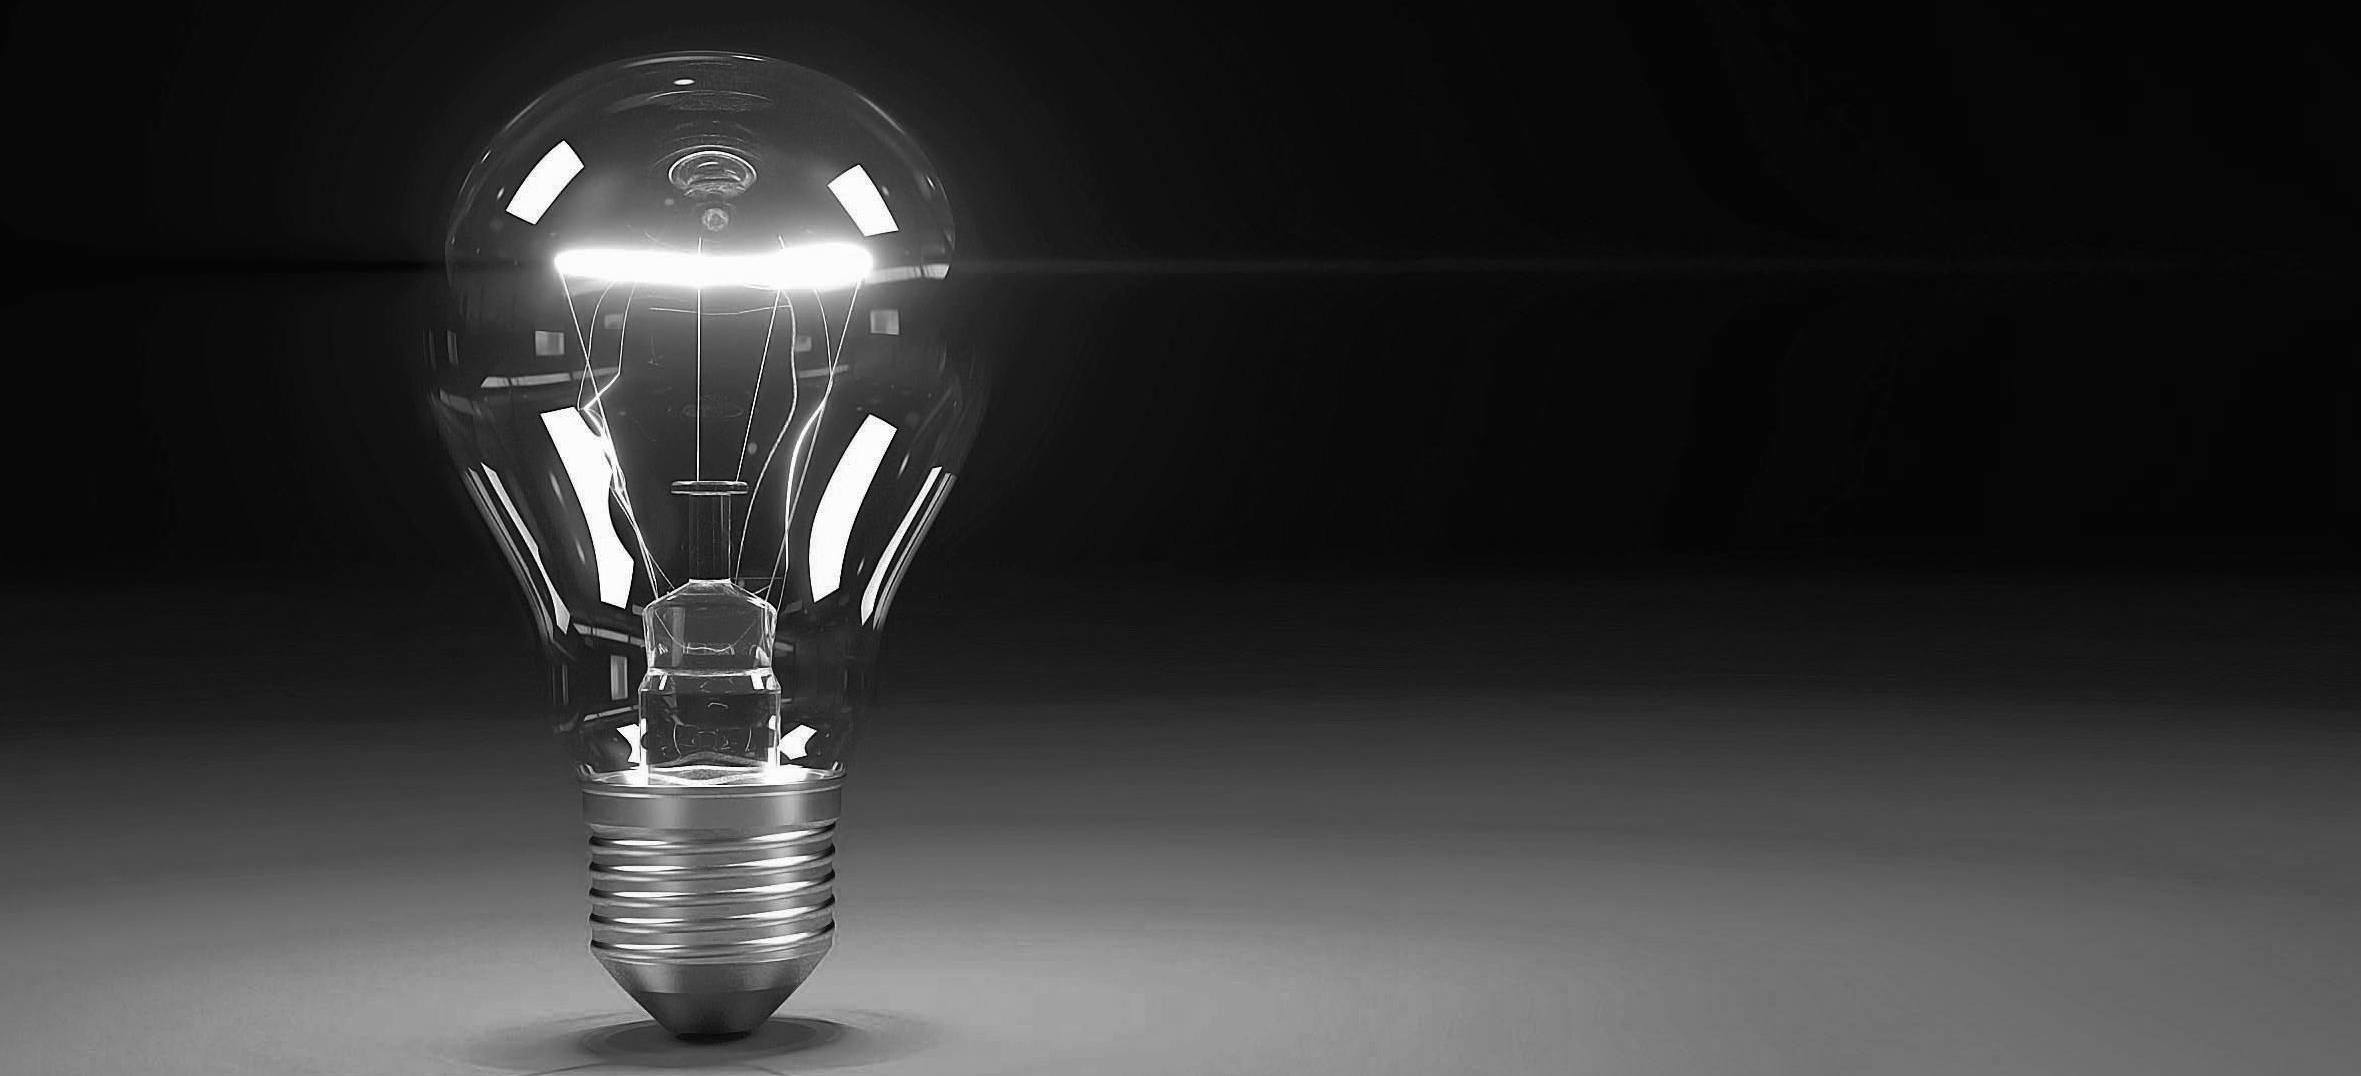 Lightbulb new ideas concepts trends